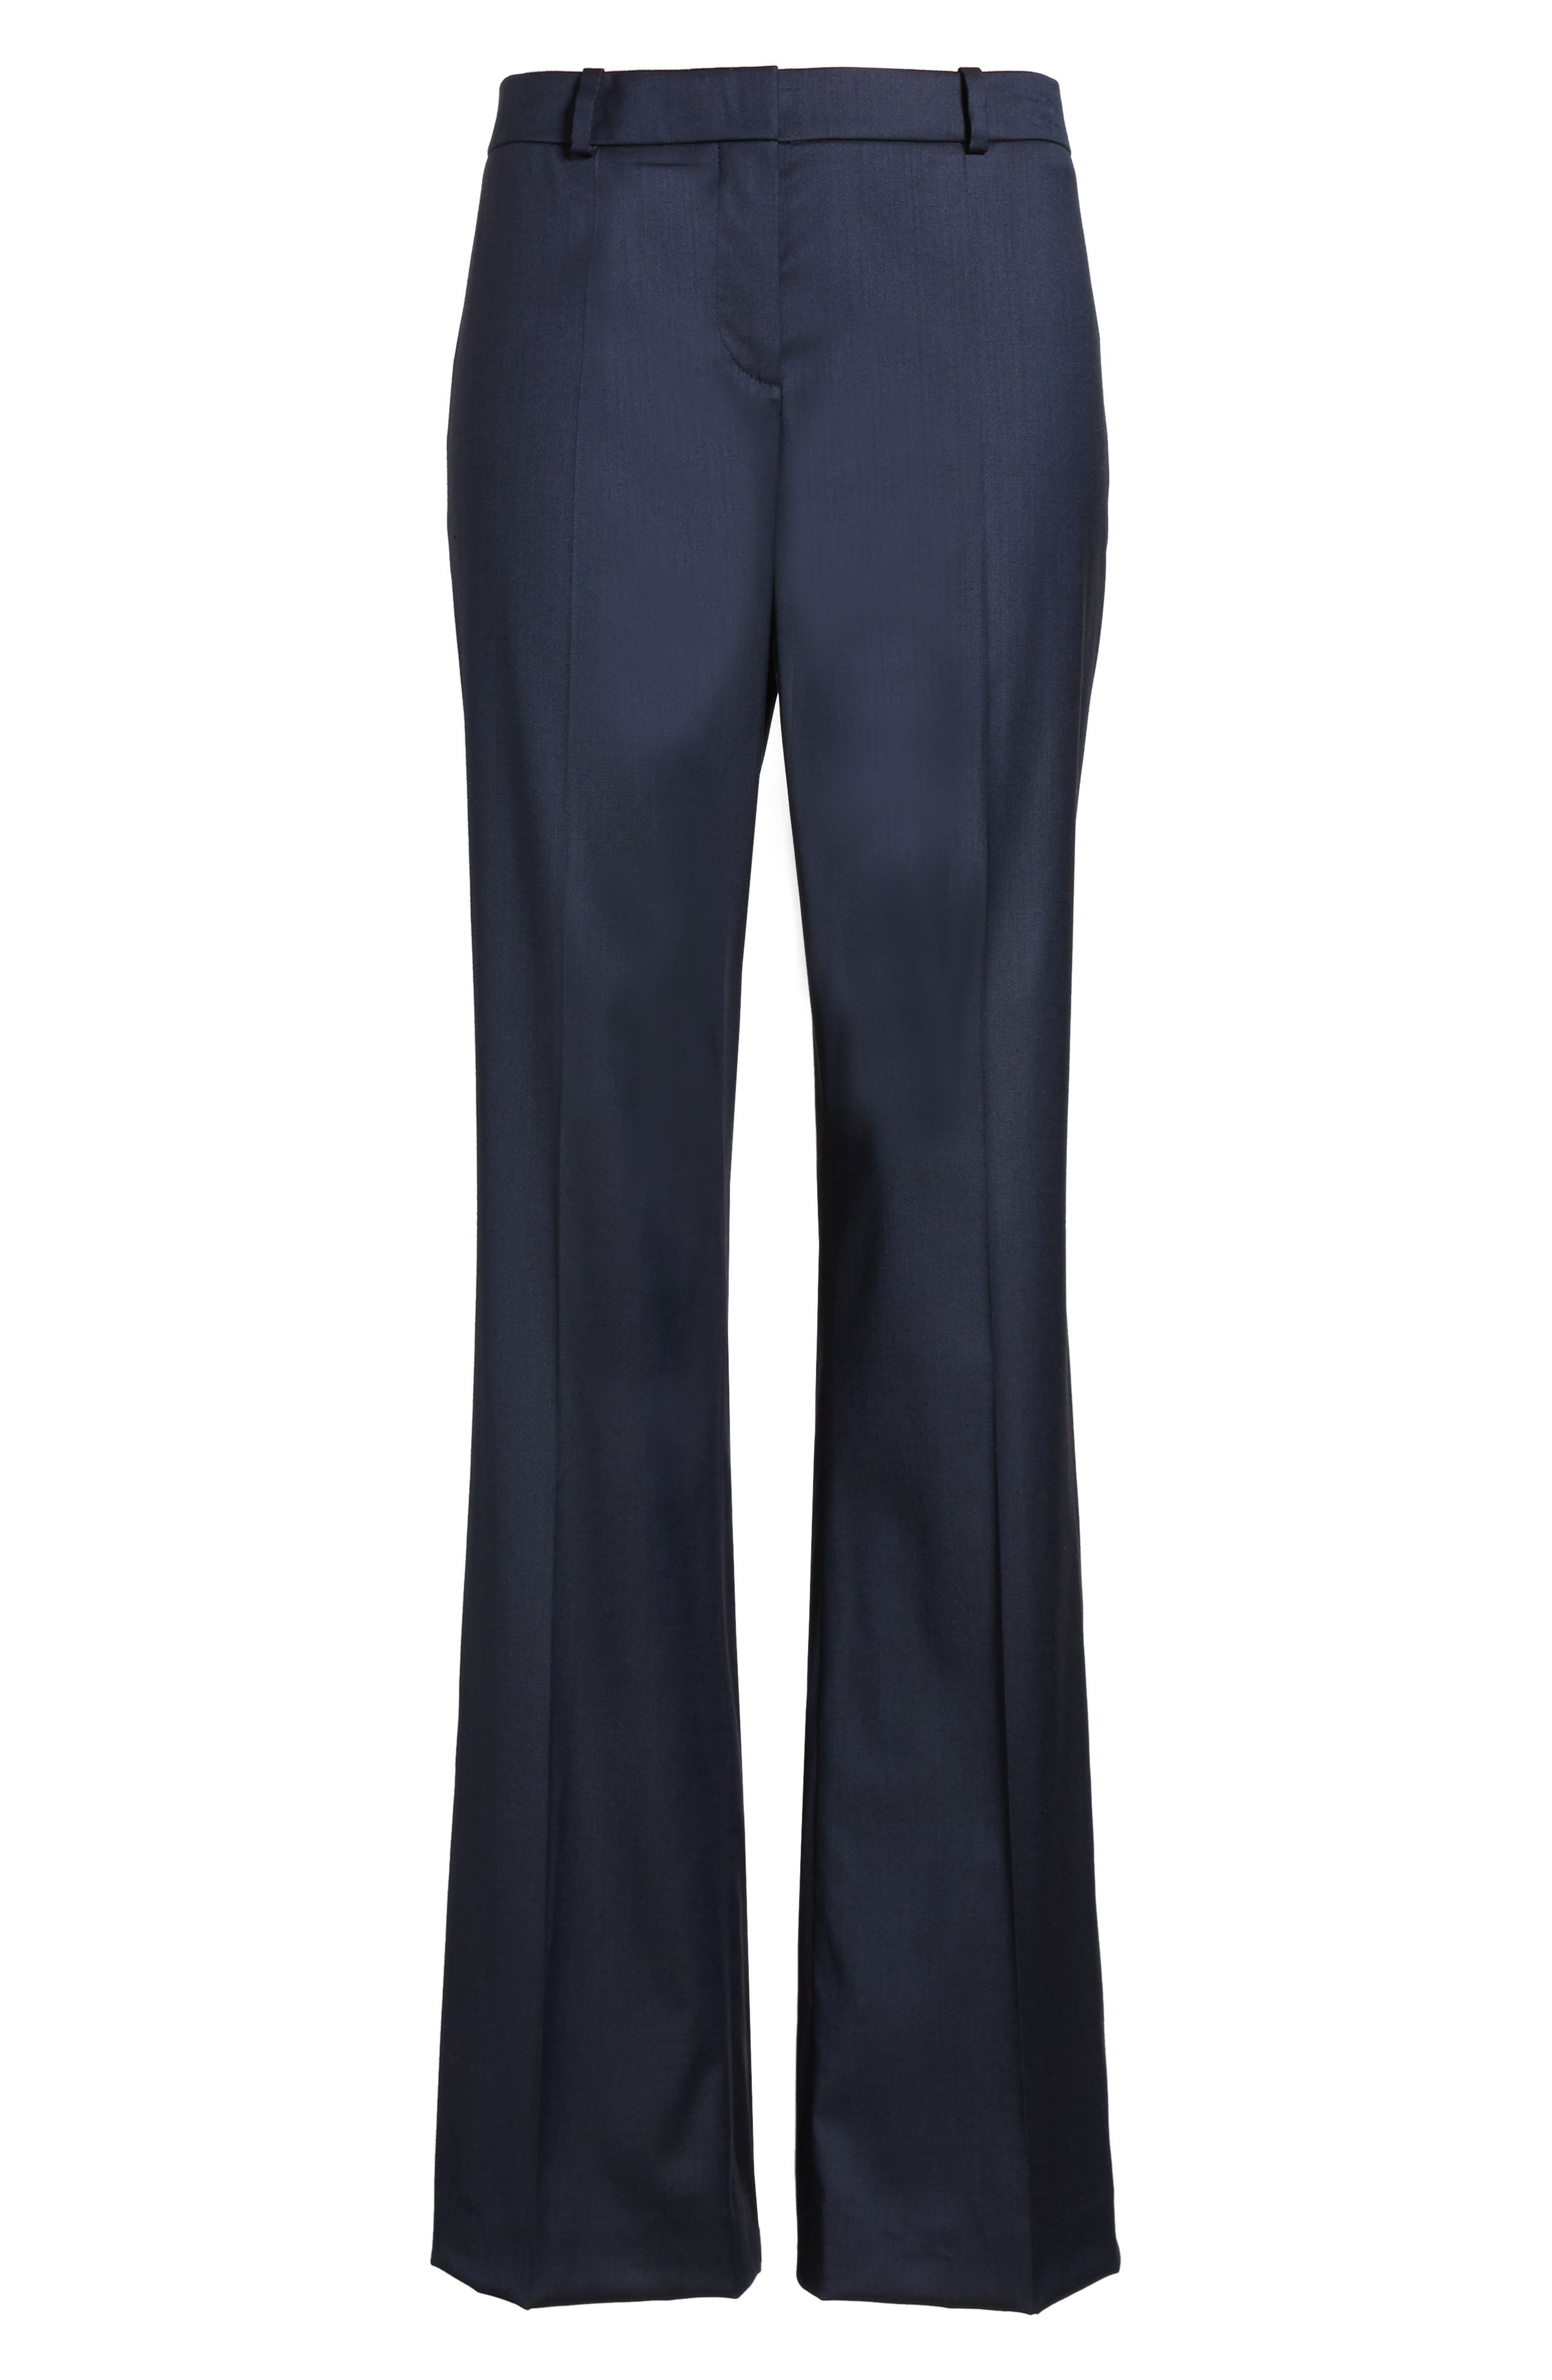 Stretch Wool Blend Suit Trousers,                             Alternate thumbnail 5, color,                             424